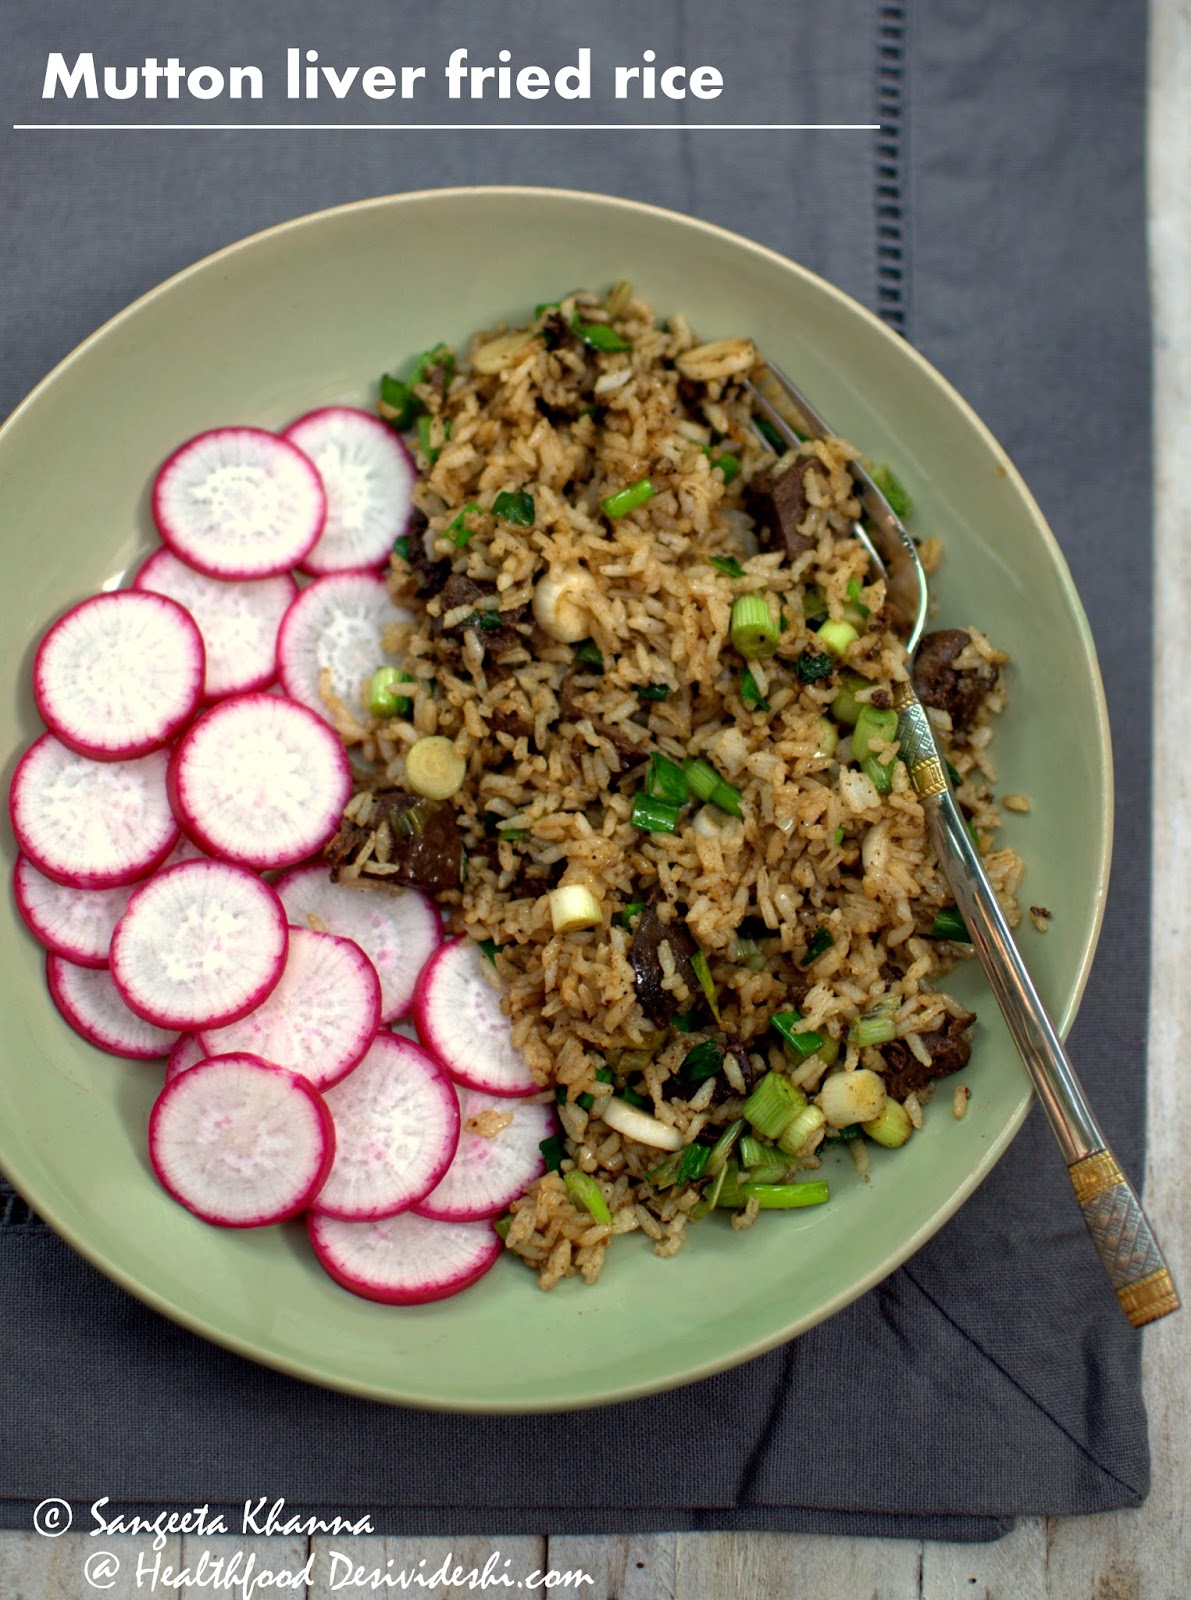 Goat liver with dill leaves indian kitchen cooking recipes - Mutton Liver And Spring Onion Fried Rice